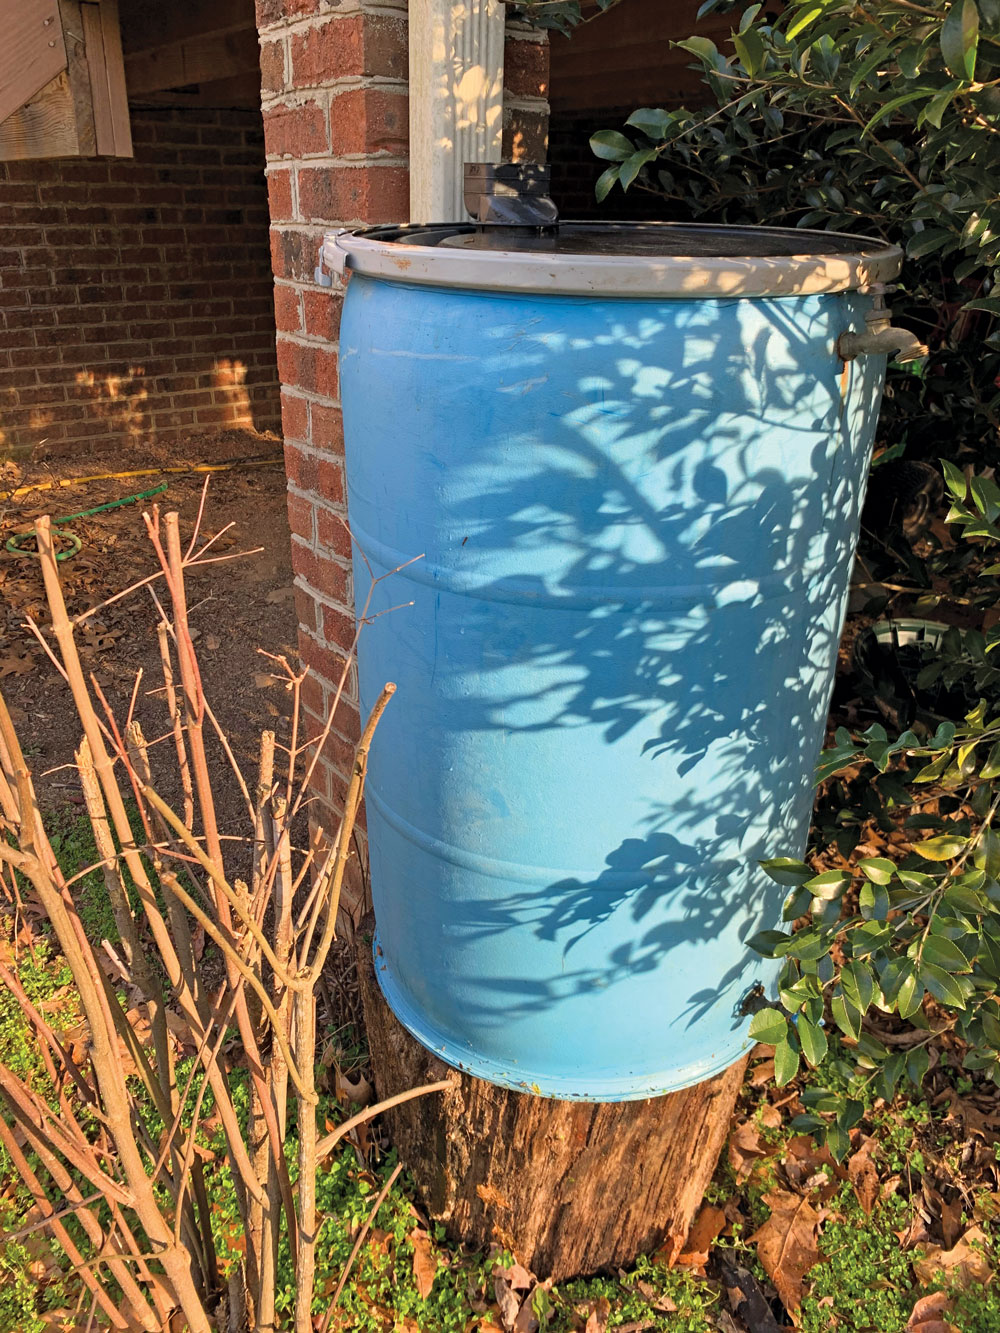 A water barrel is in place under a downspout